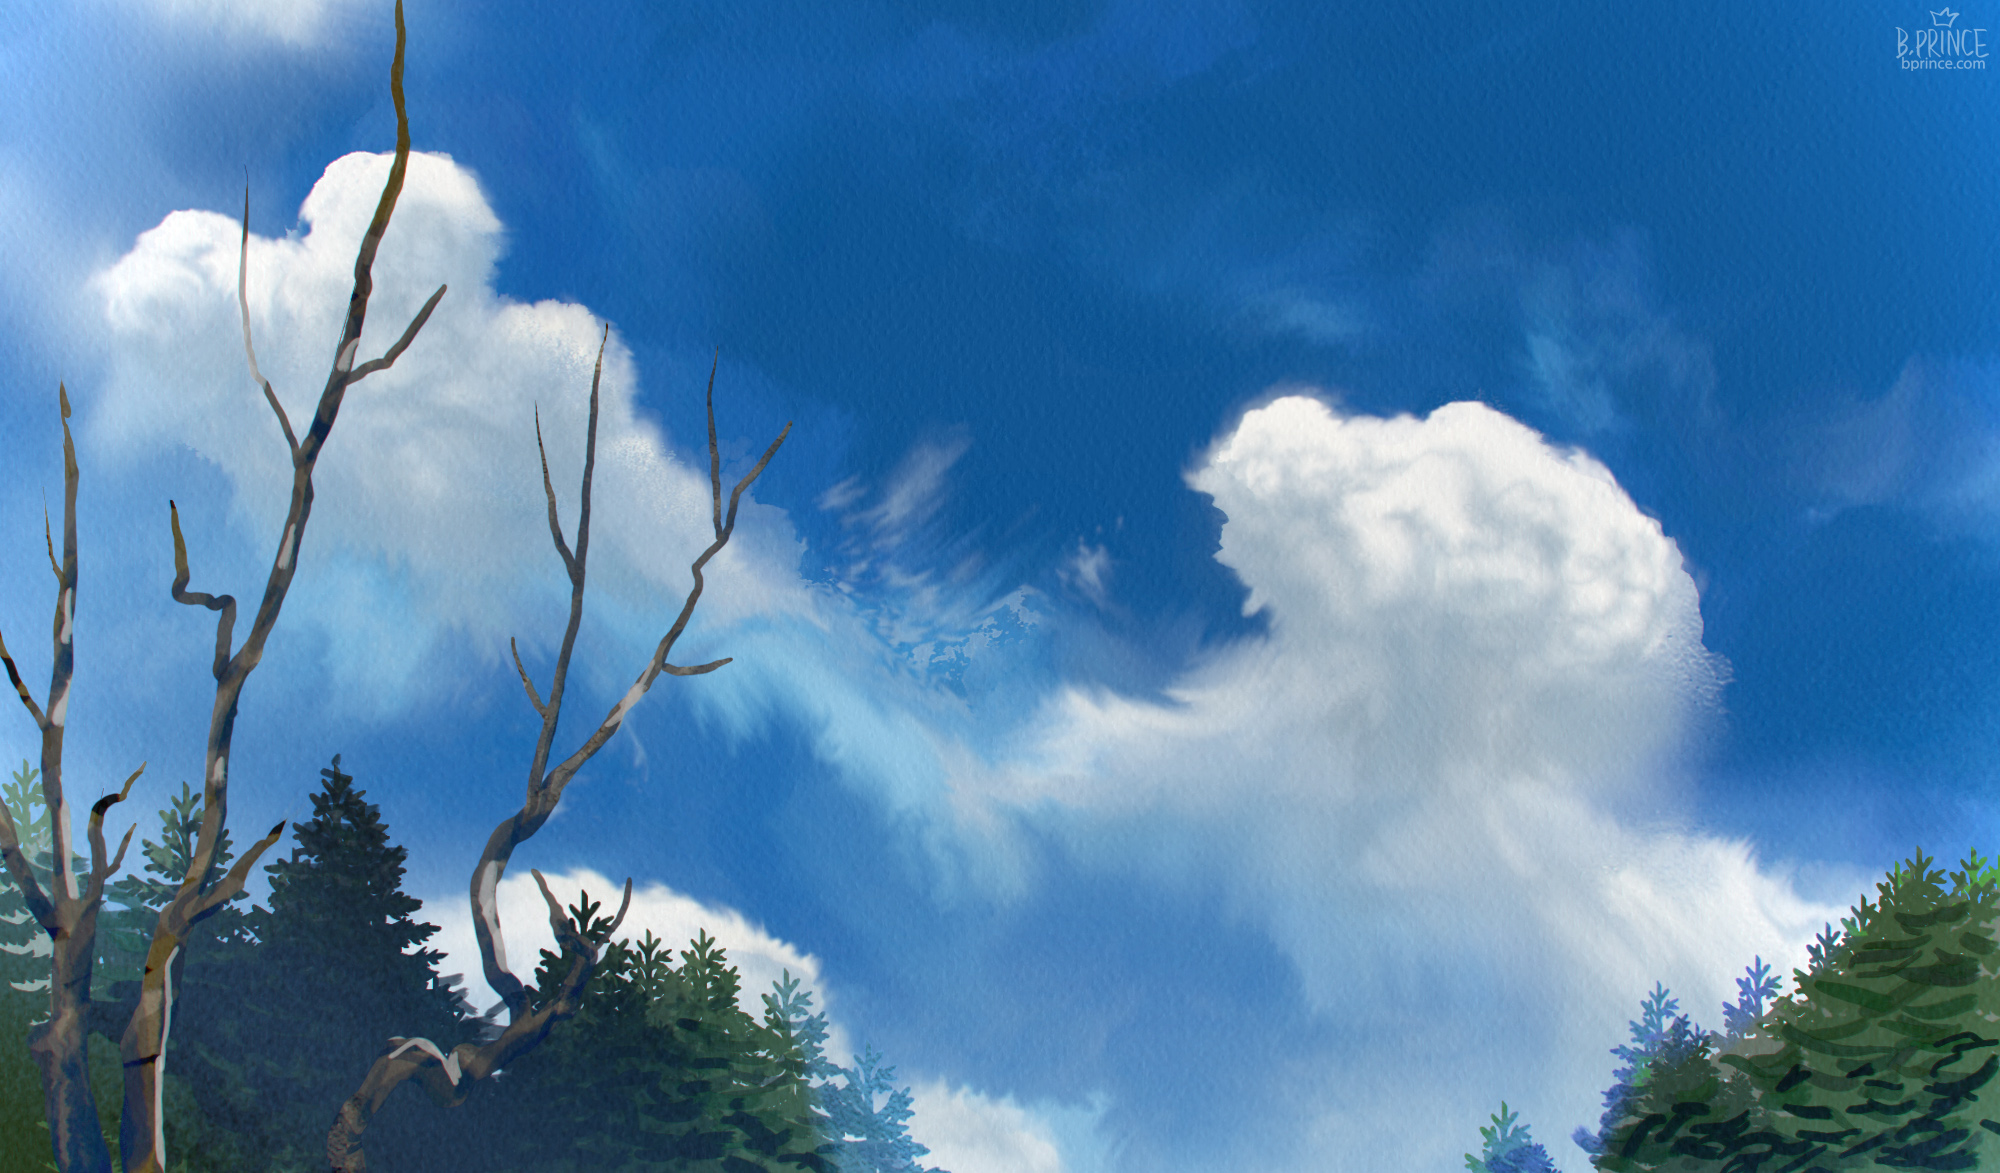 fluffy, windswept clouds in a blue sky